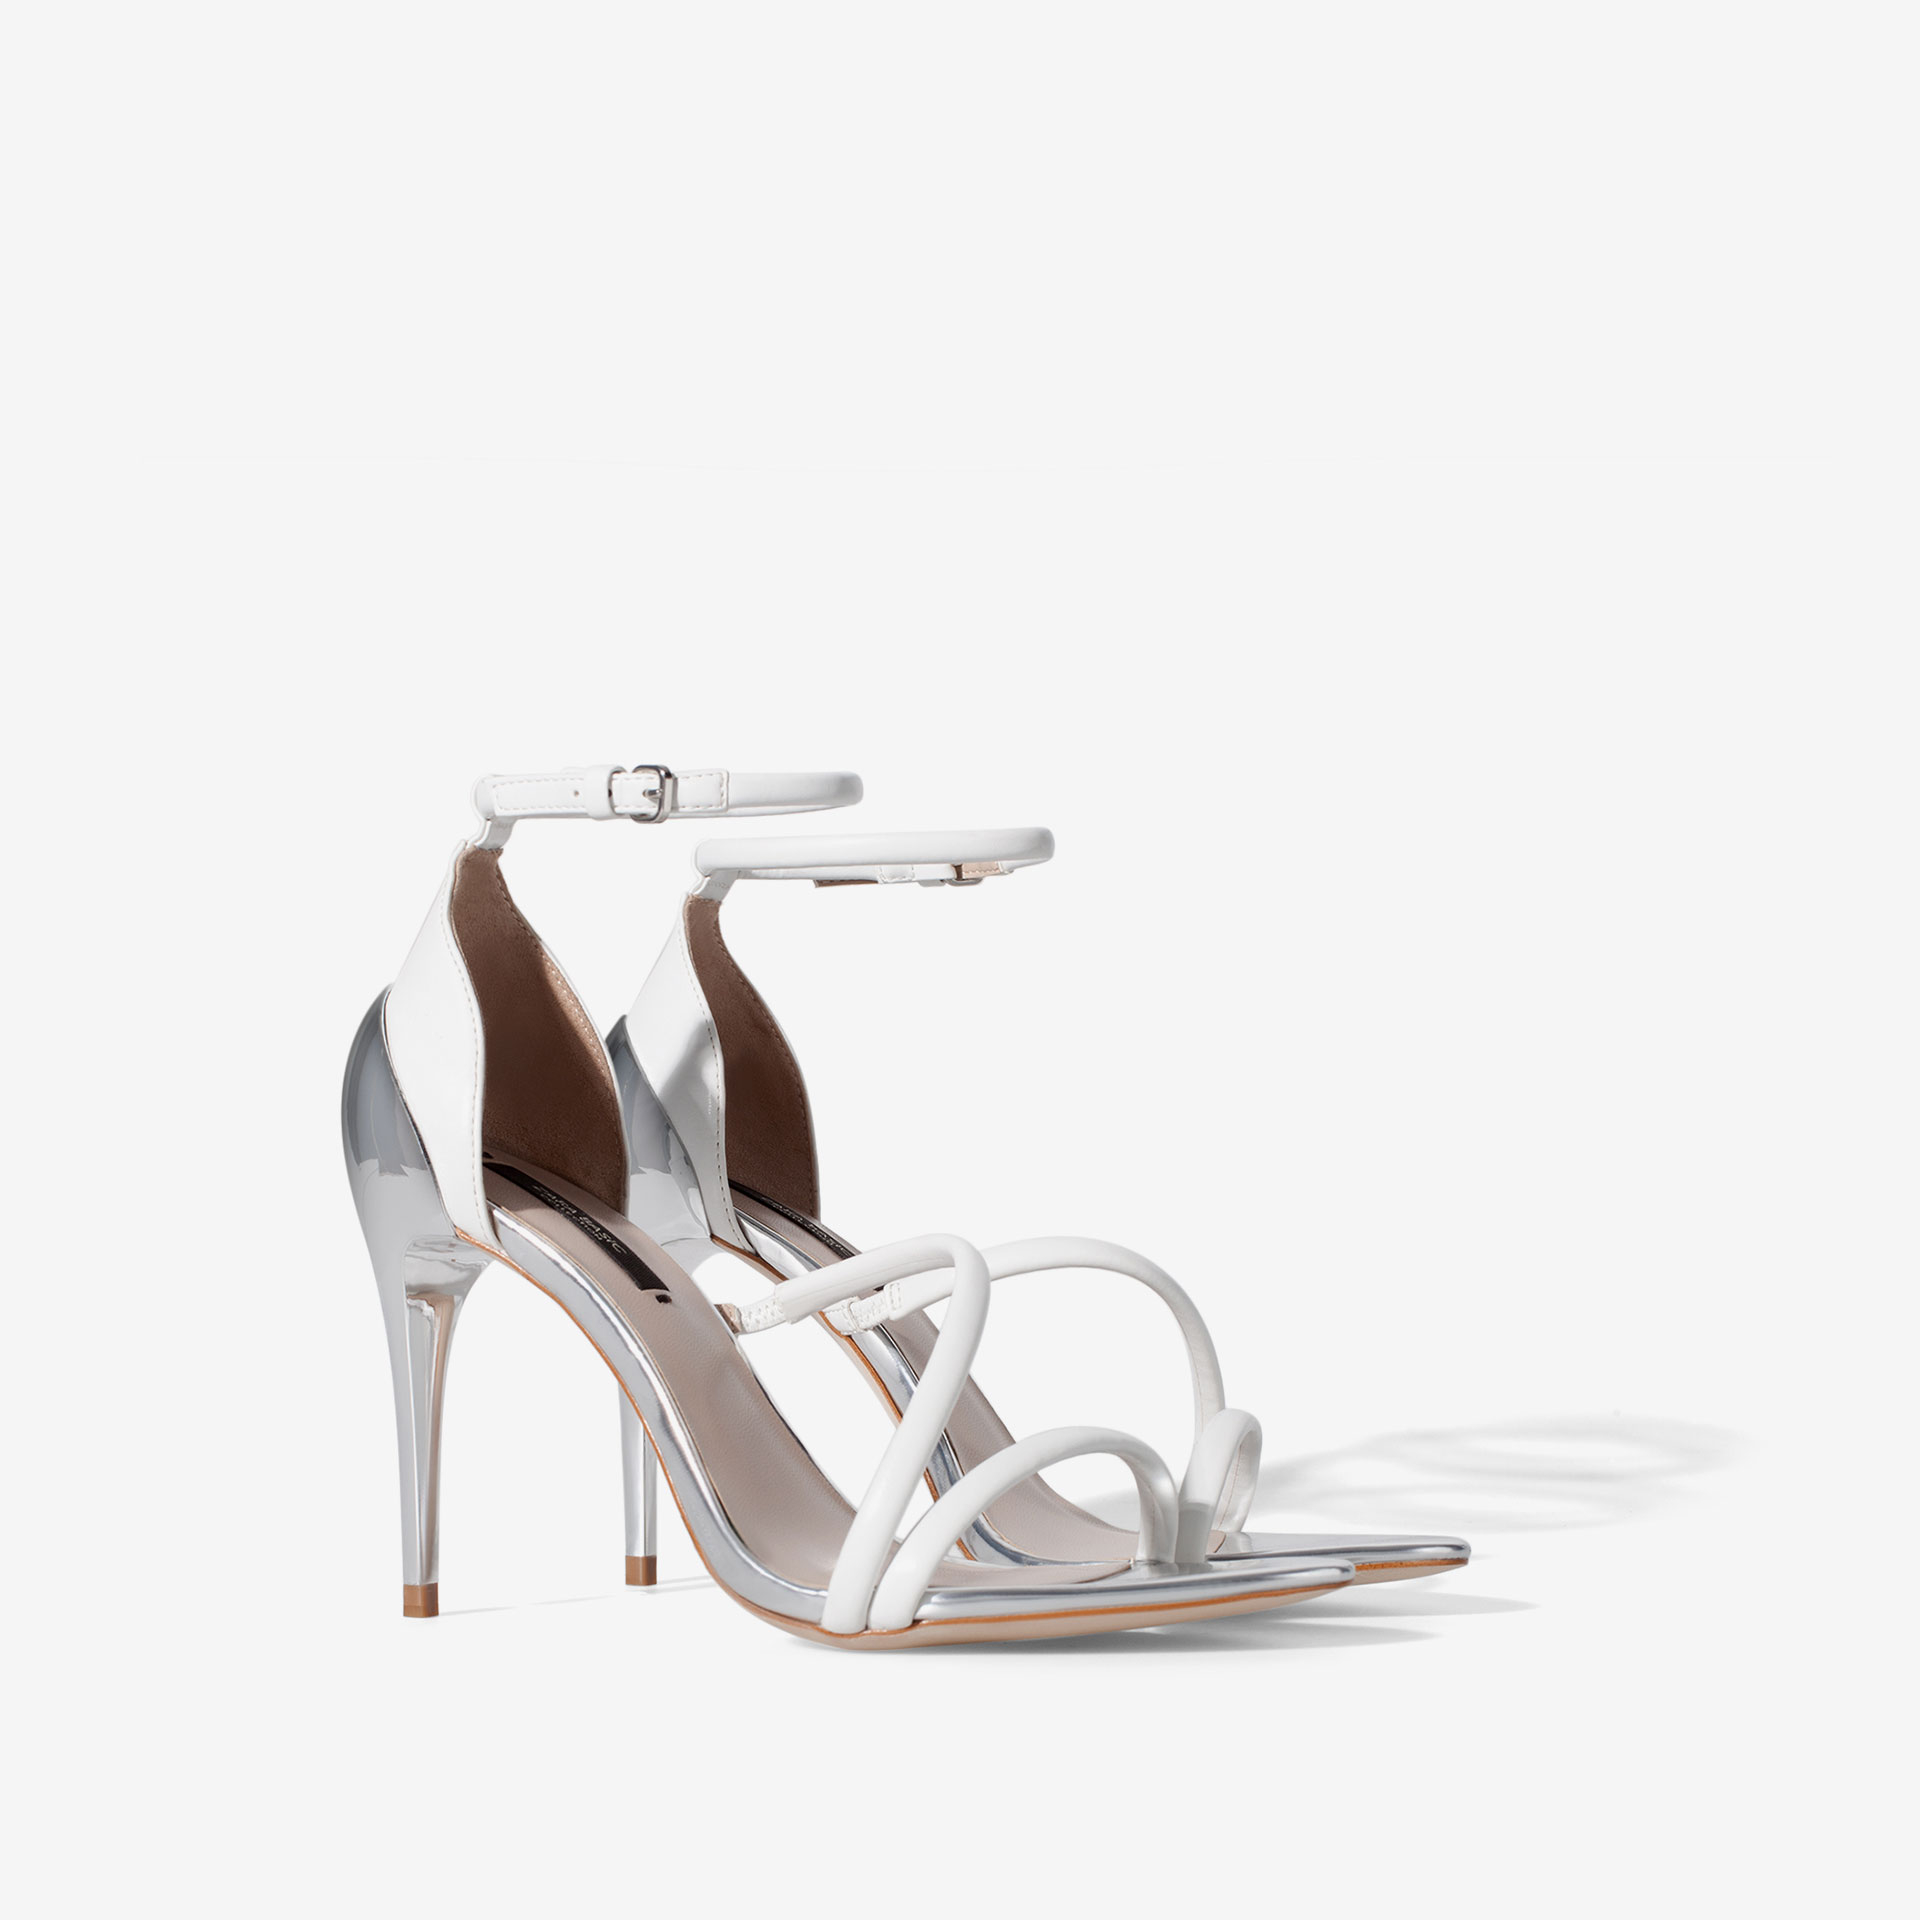 Zara High Heel Strappy Sandals in White | Lyst